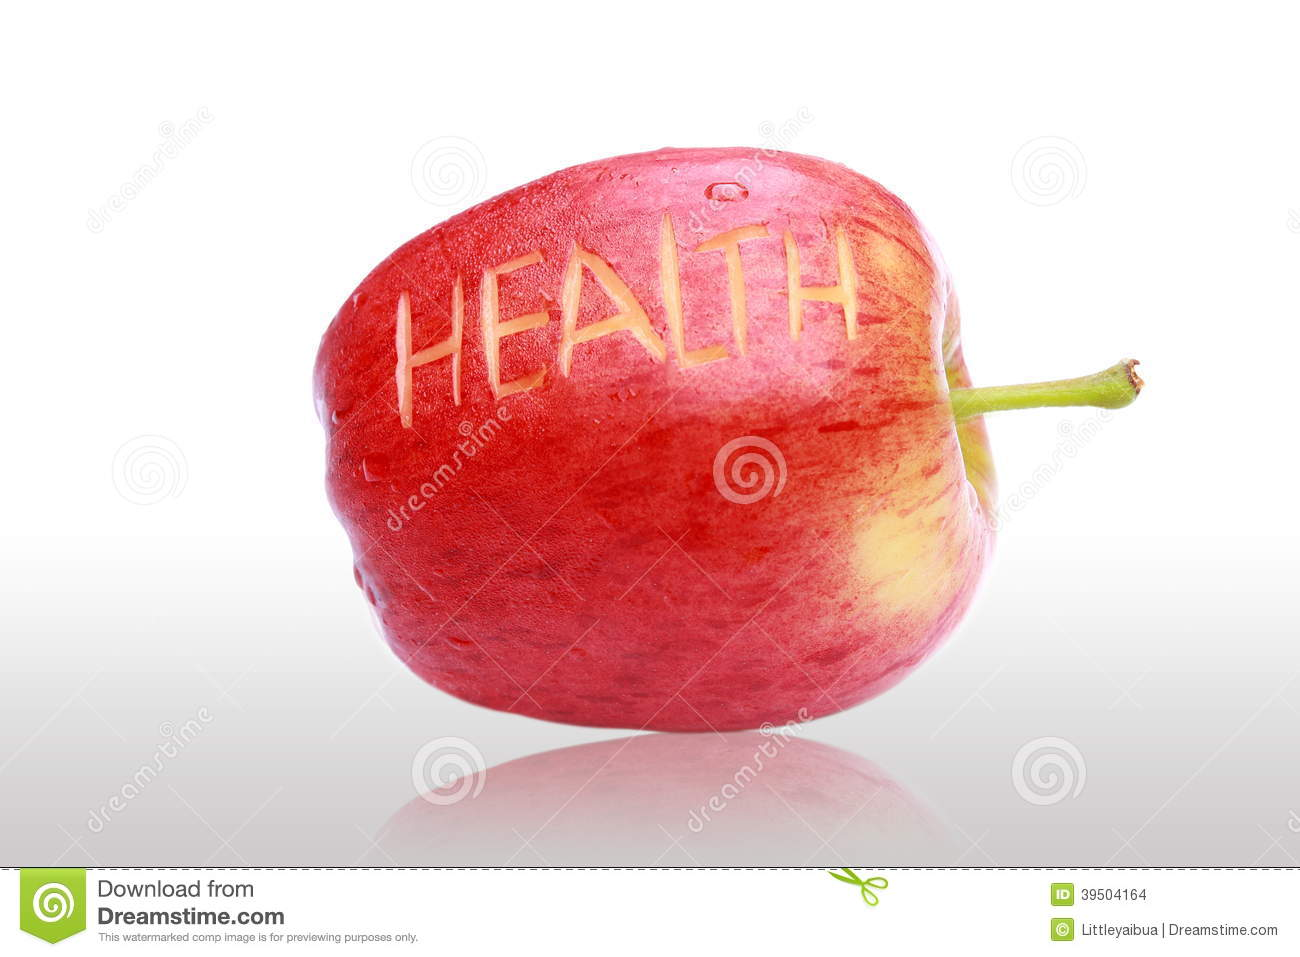 Delicious fresh red apple and health text.